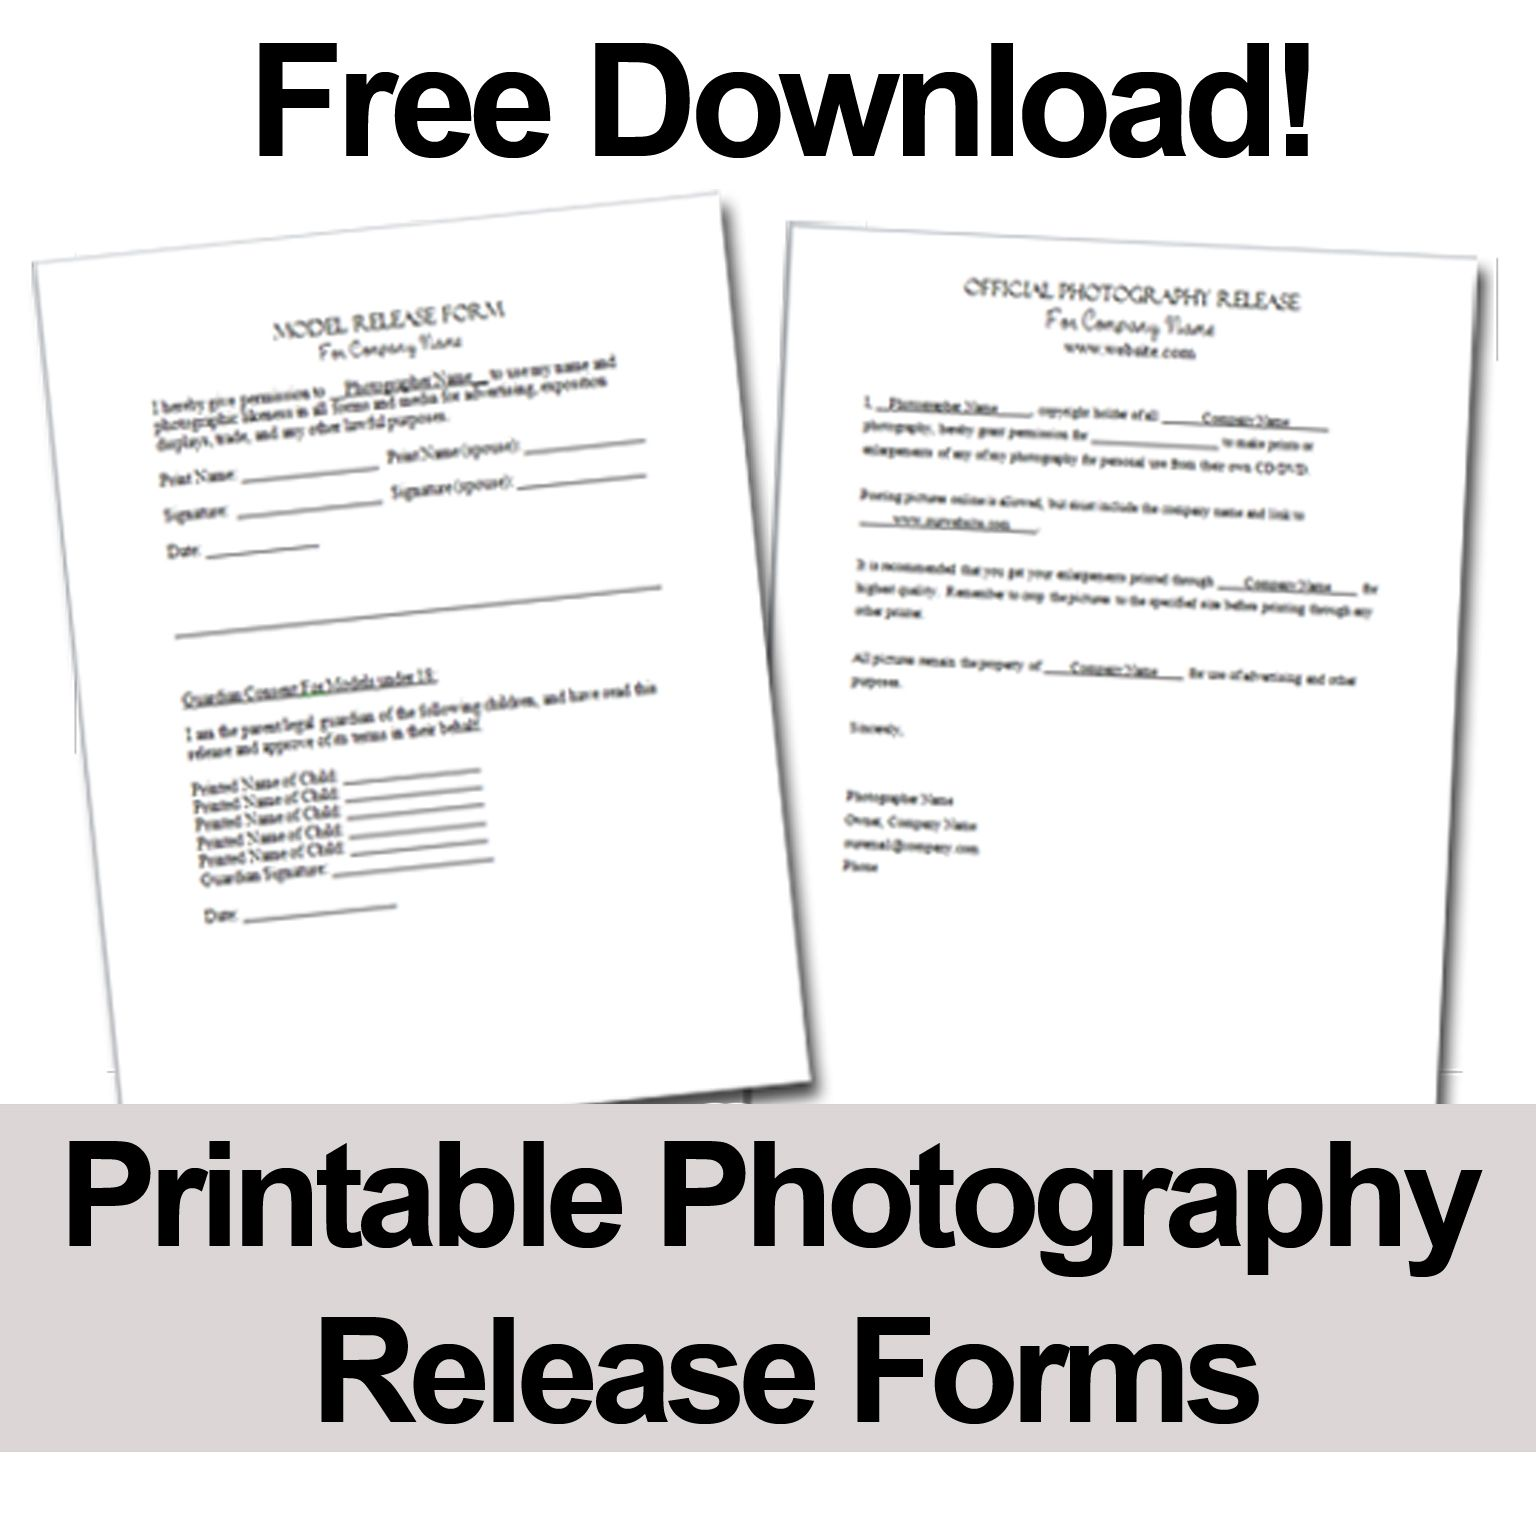 print these free photography release forms to give your clients